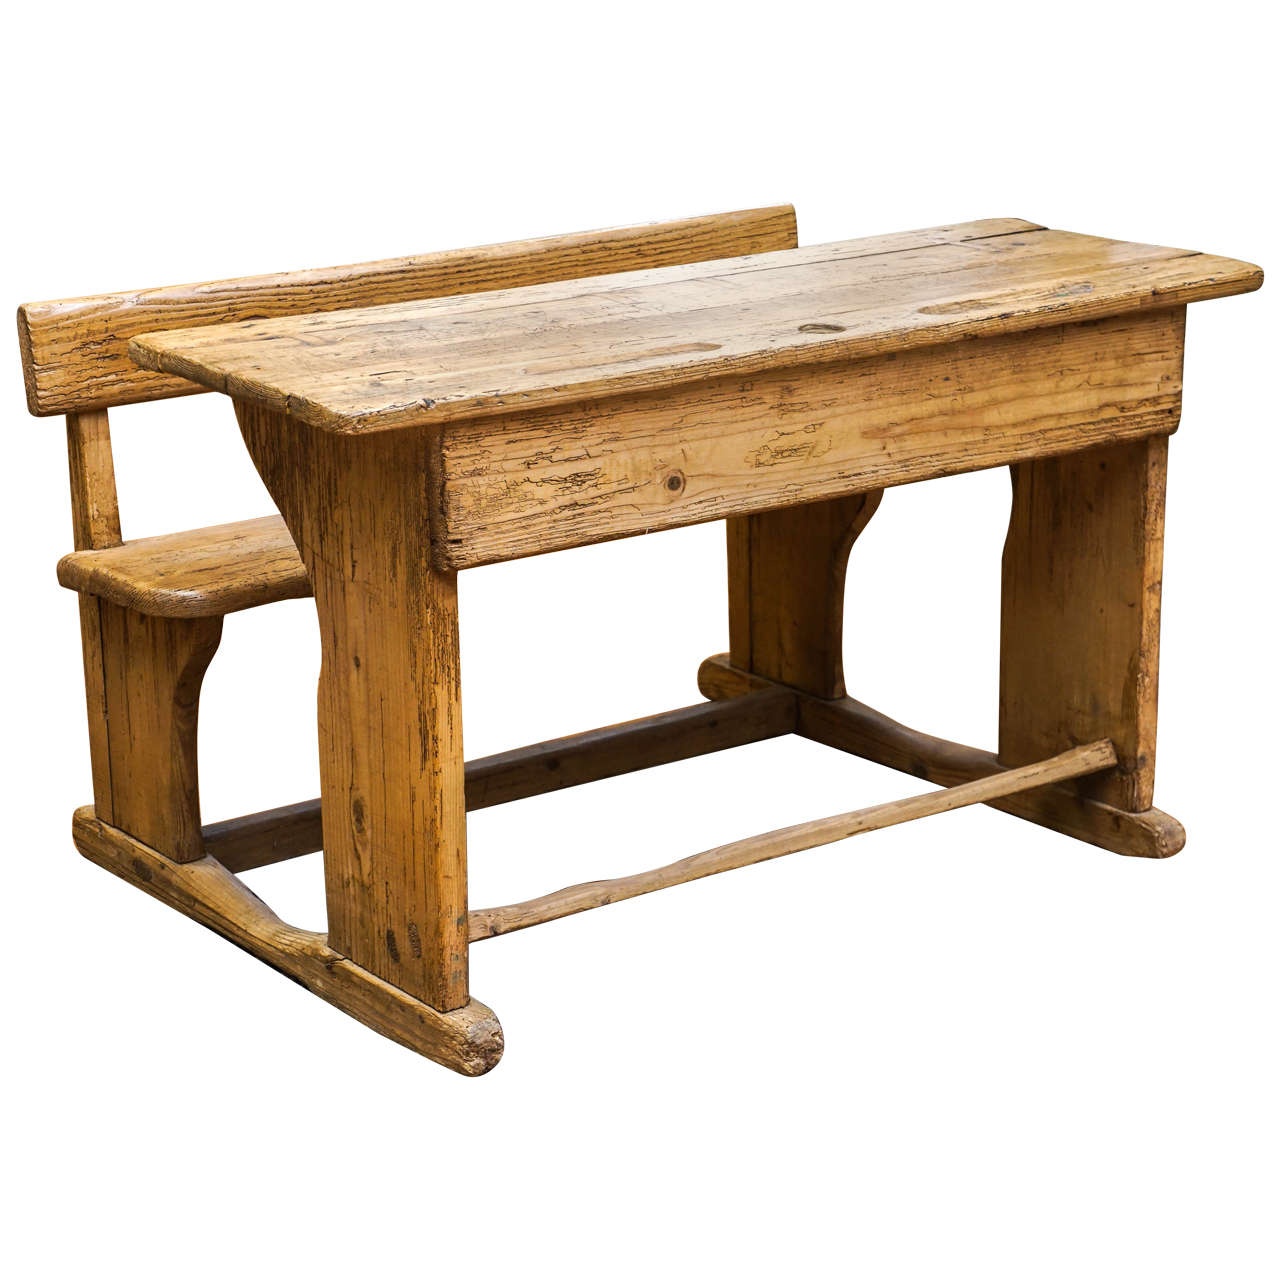 Two Seat English School Desk At 1stdibs